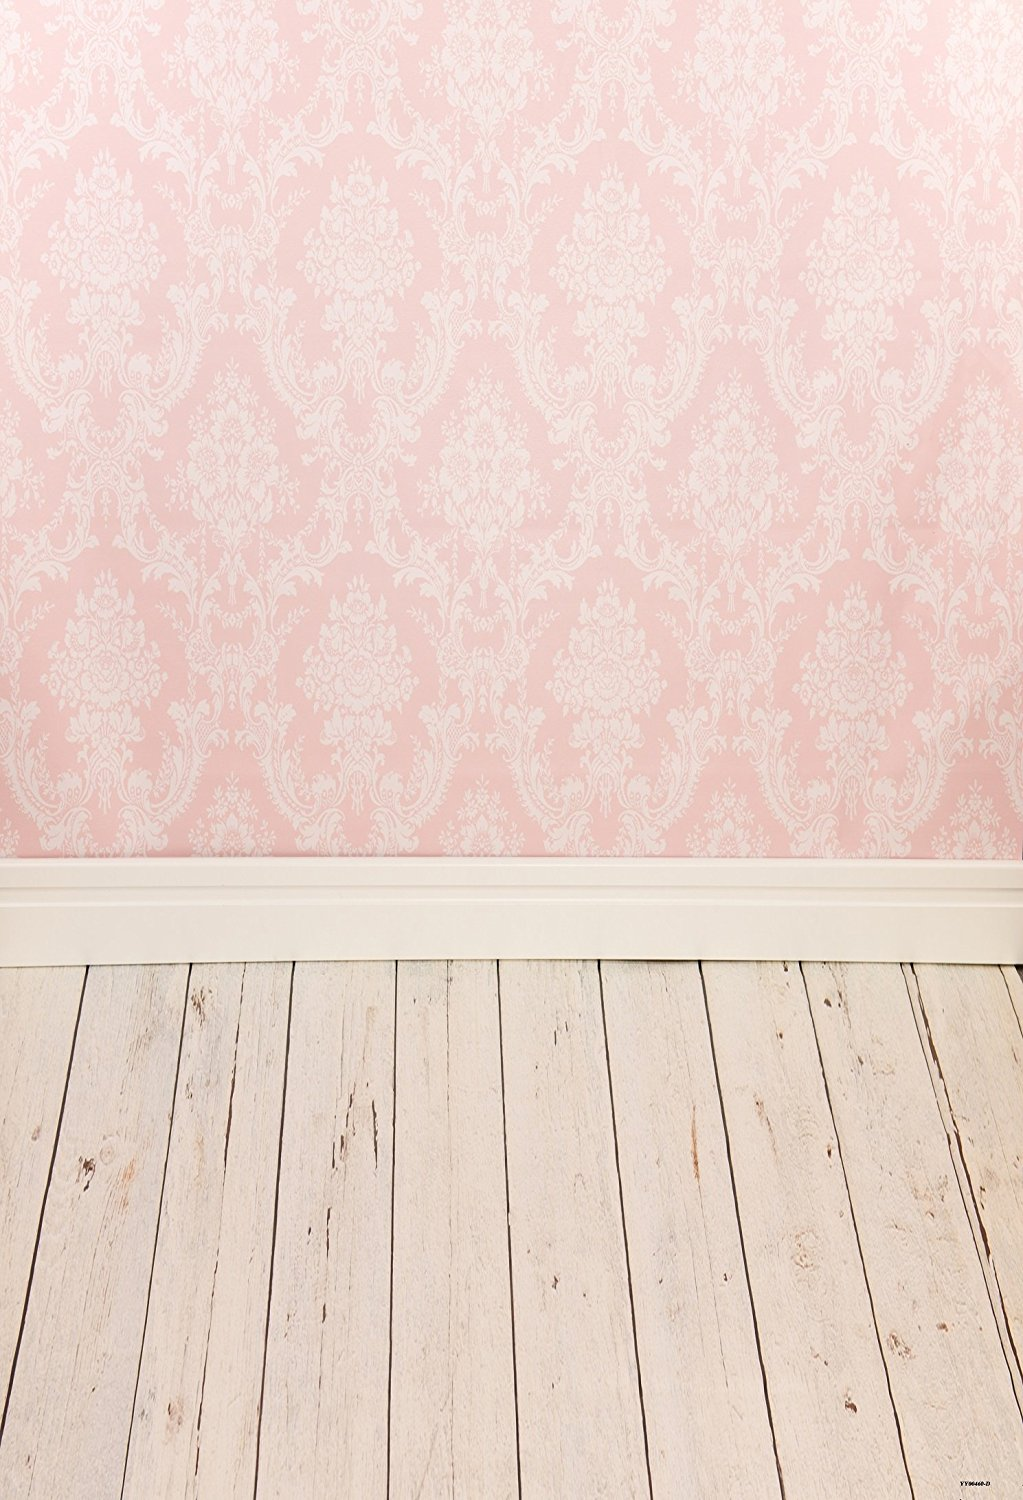 5x7ft Pink damask Motifs Photo Backgrounds Wood Floor Wrinkle free Photography Backdrops for Newborn wd0460